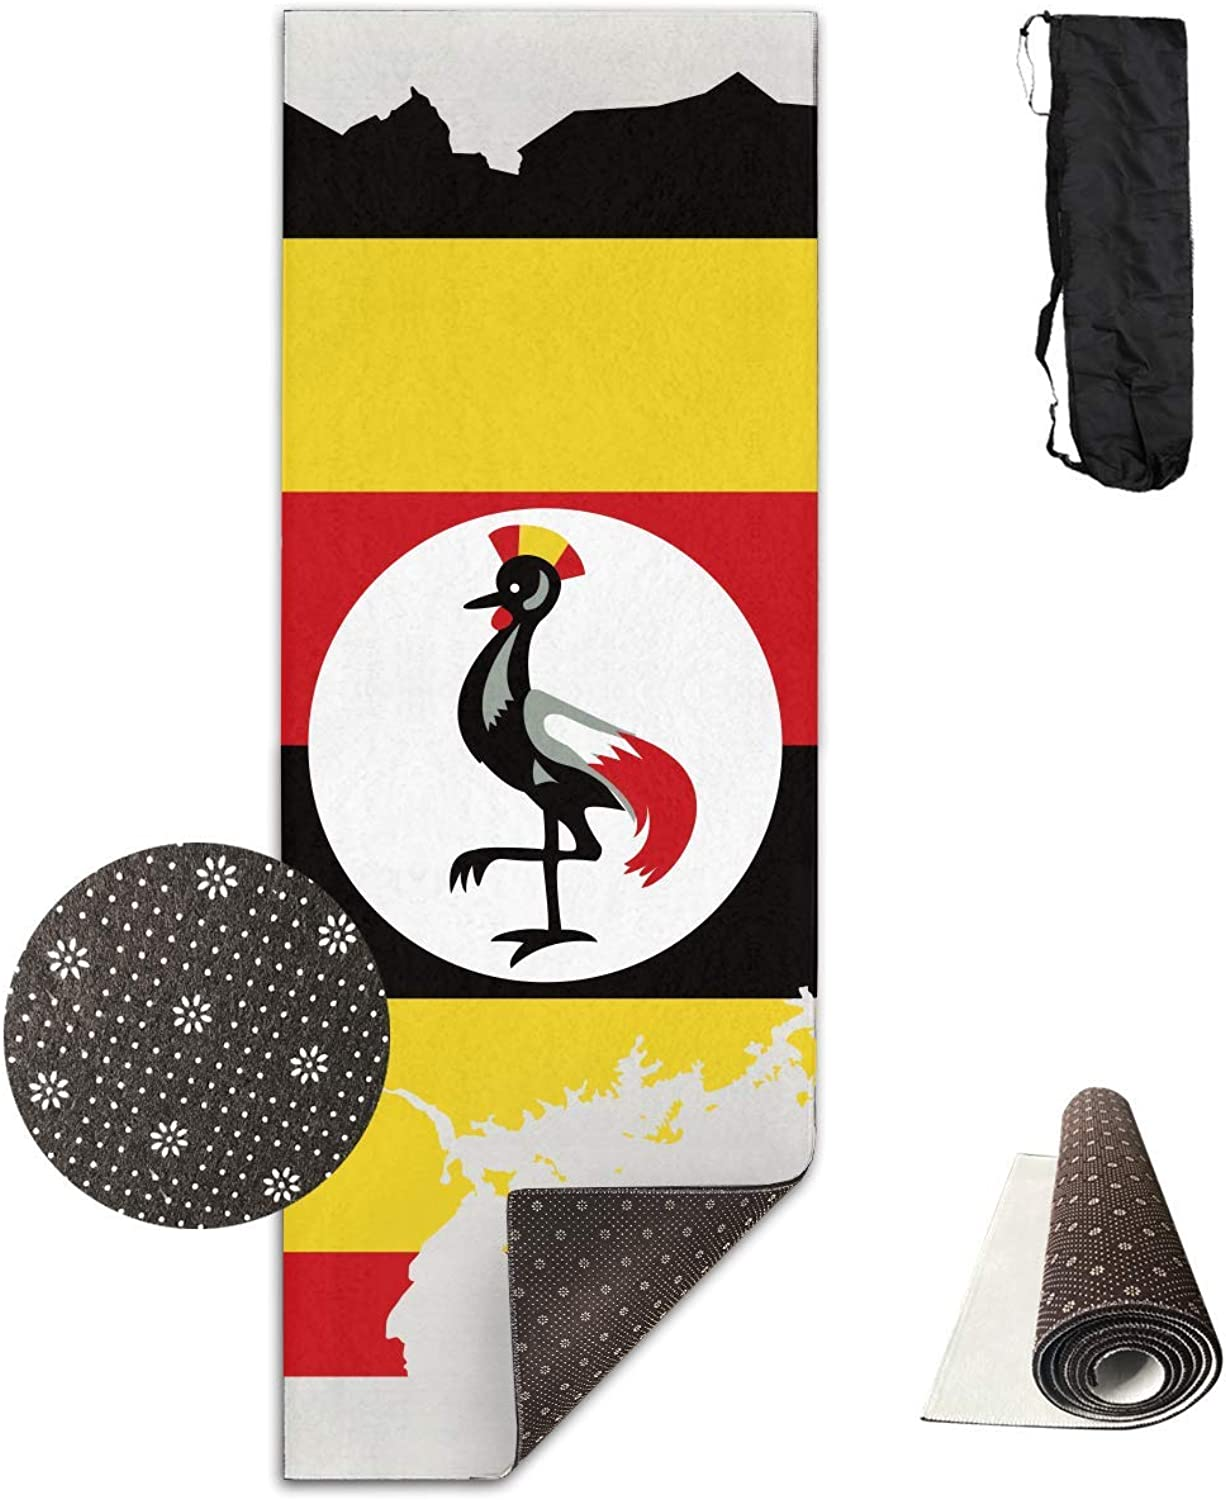 Uganda Flag Map Yoga Mat  Advanced Yoga Mat  NonSlip Lining  Easy to Clean  LatexFree  Lightweight and Durable  Long 180 Width 61cm